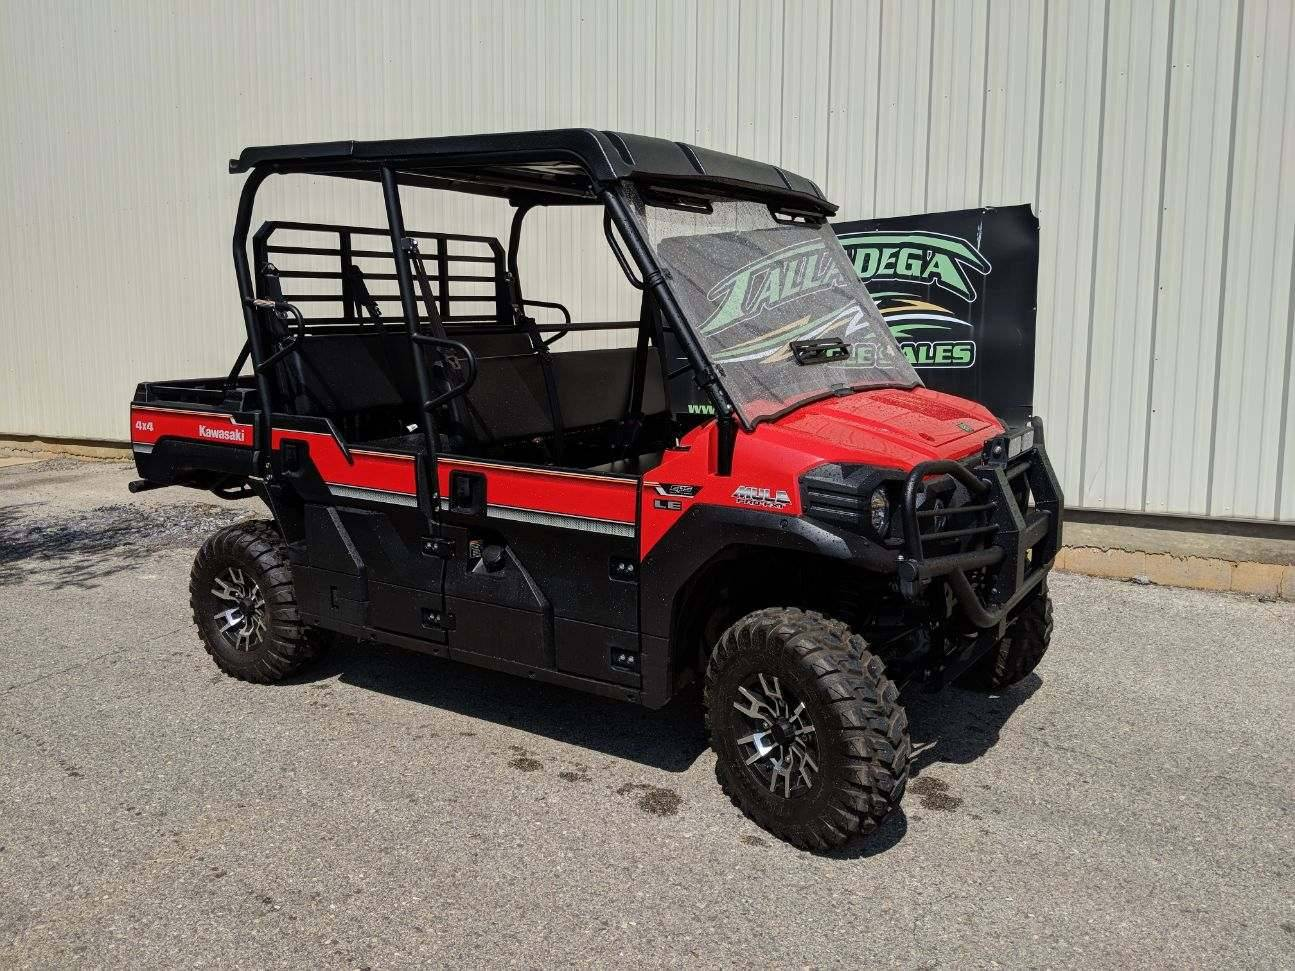 2019 Kawasaki Mule PRO-FXT EPS LE in Talladega, Alabama - Photo 1